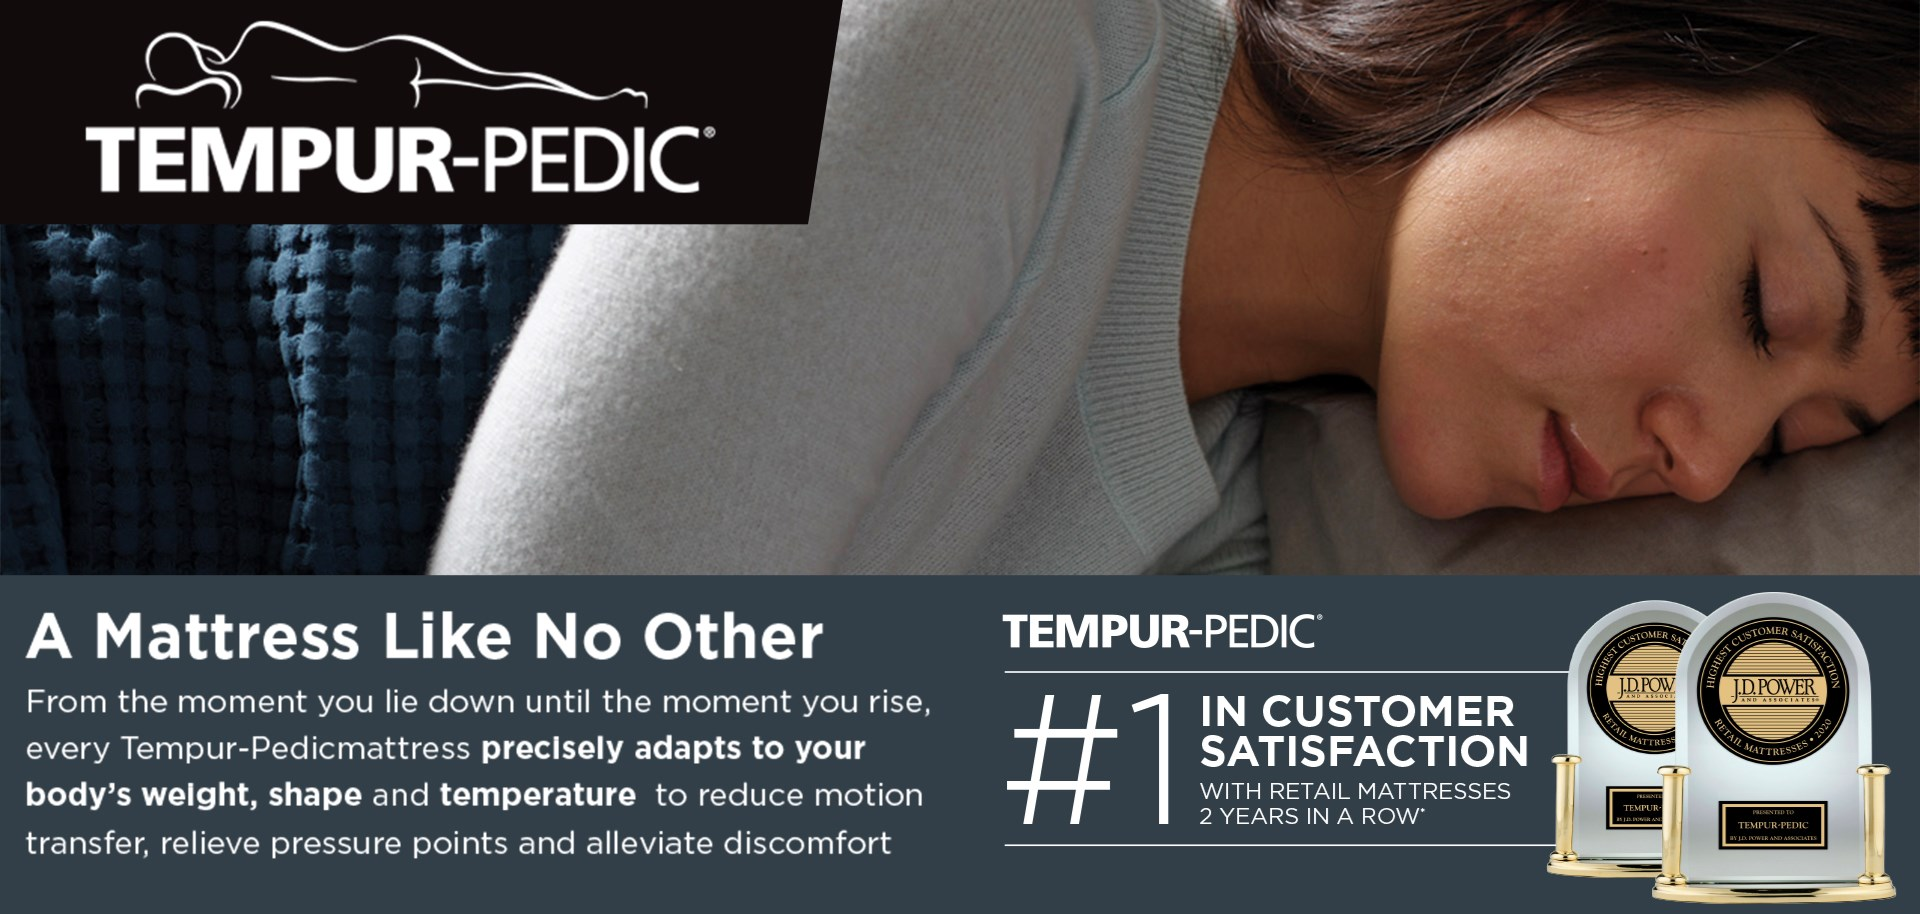 Tempur-Pedic | From the moment you lie down until the moment you rise, every Tempur-Pedic mattress precisely adapts to your body's weight, shape, and temperature.